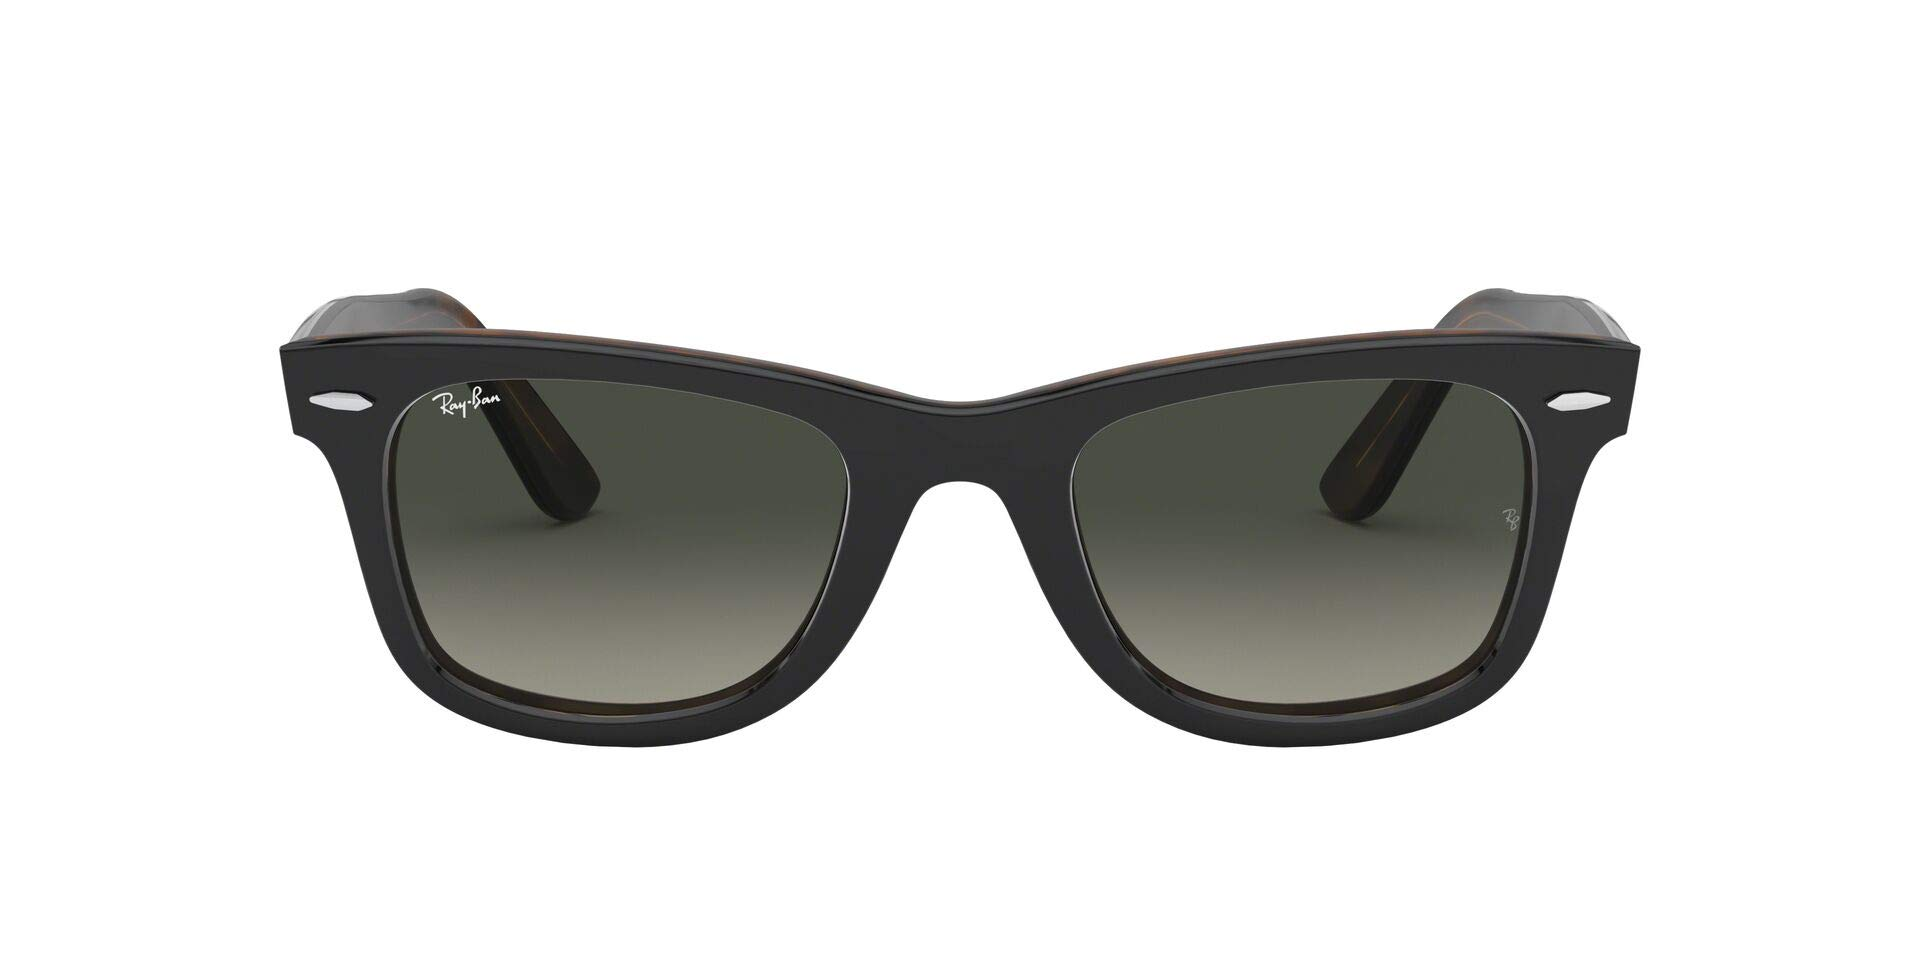 Ray-Ban RB2140 Wayfarer Sunglasses, Tortoise on Grey/Grey Gradient, 50 mm by RAY-BAN